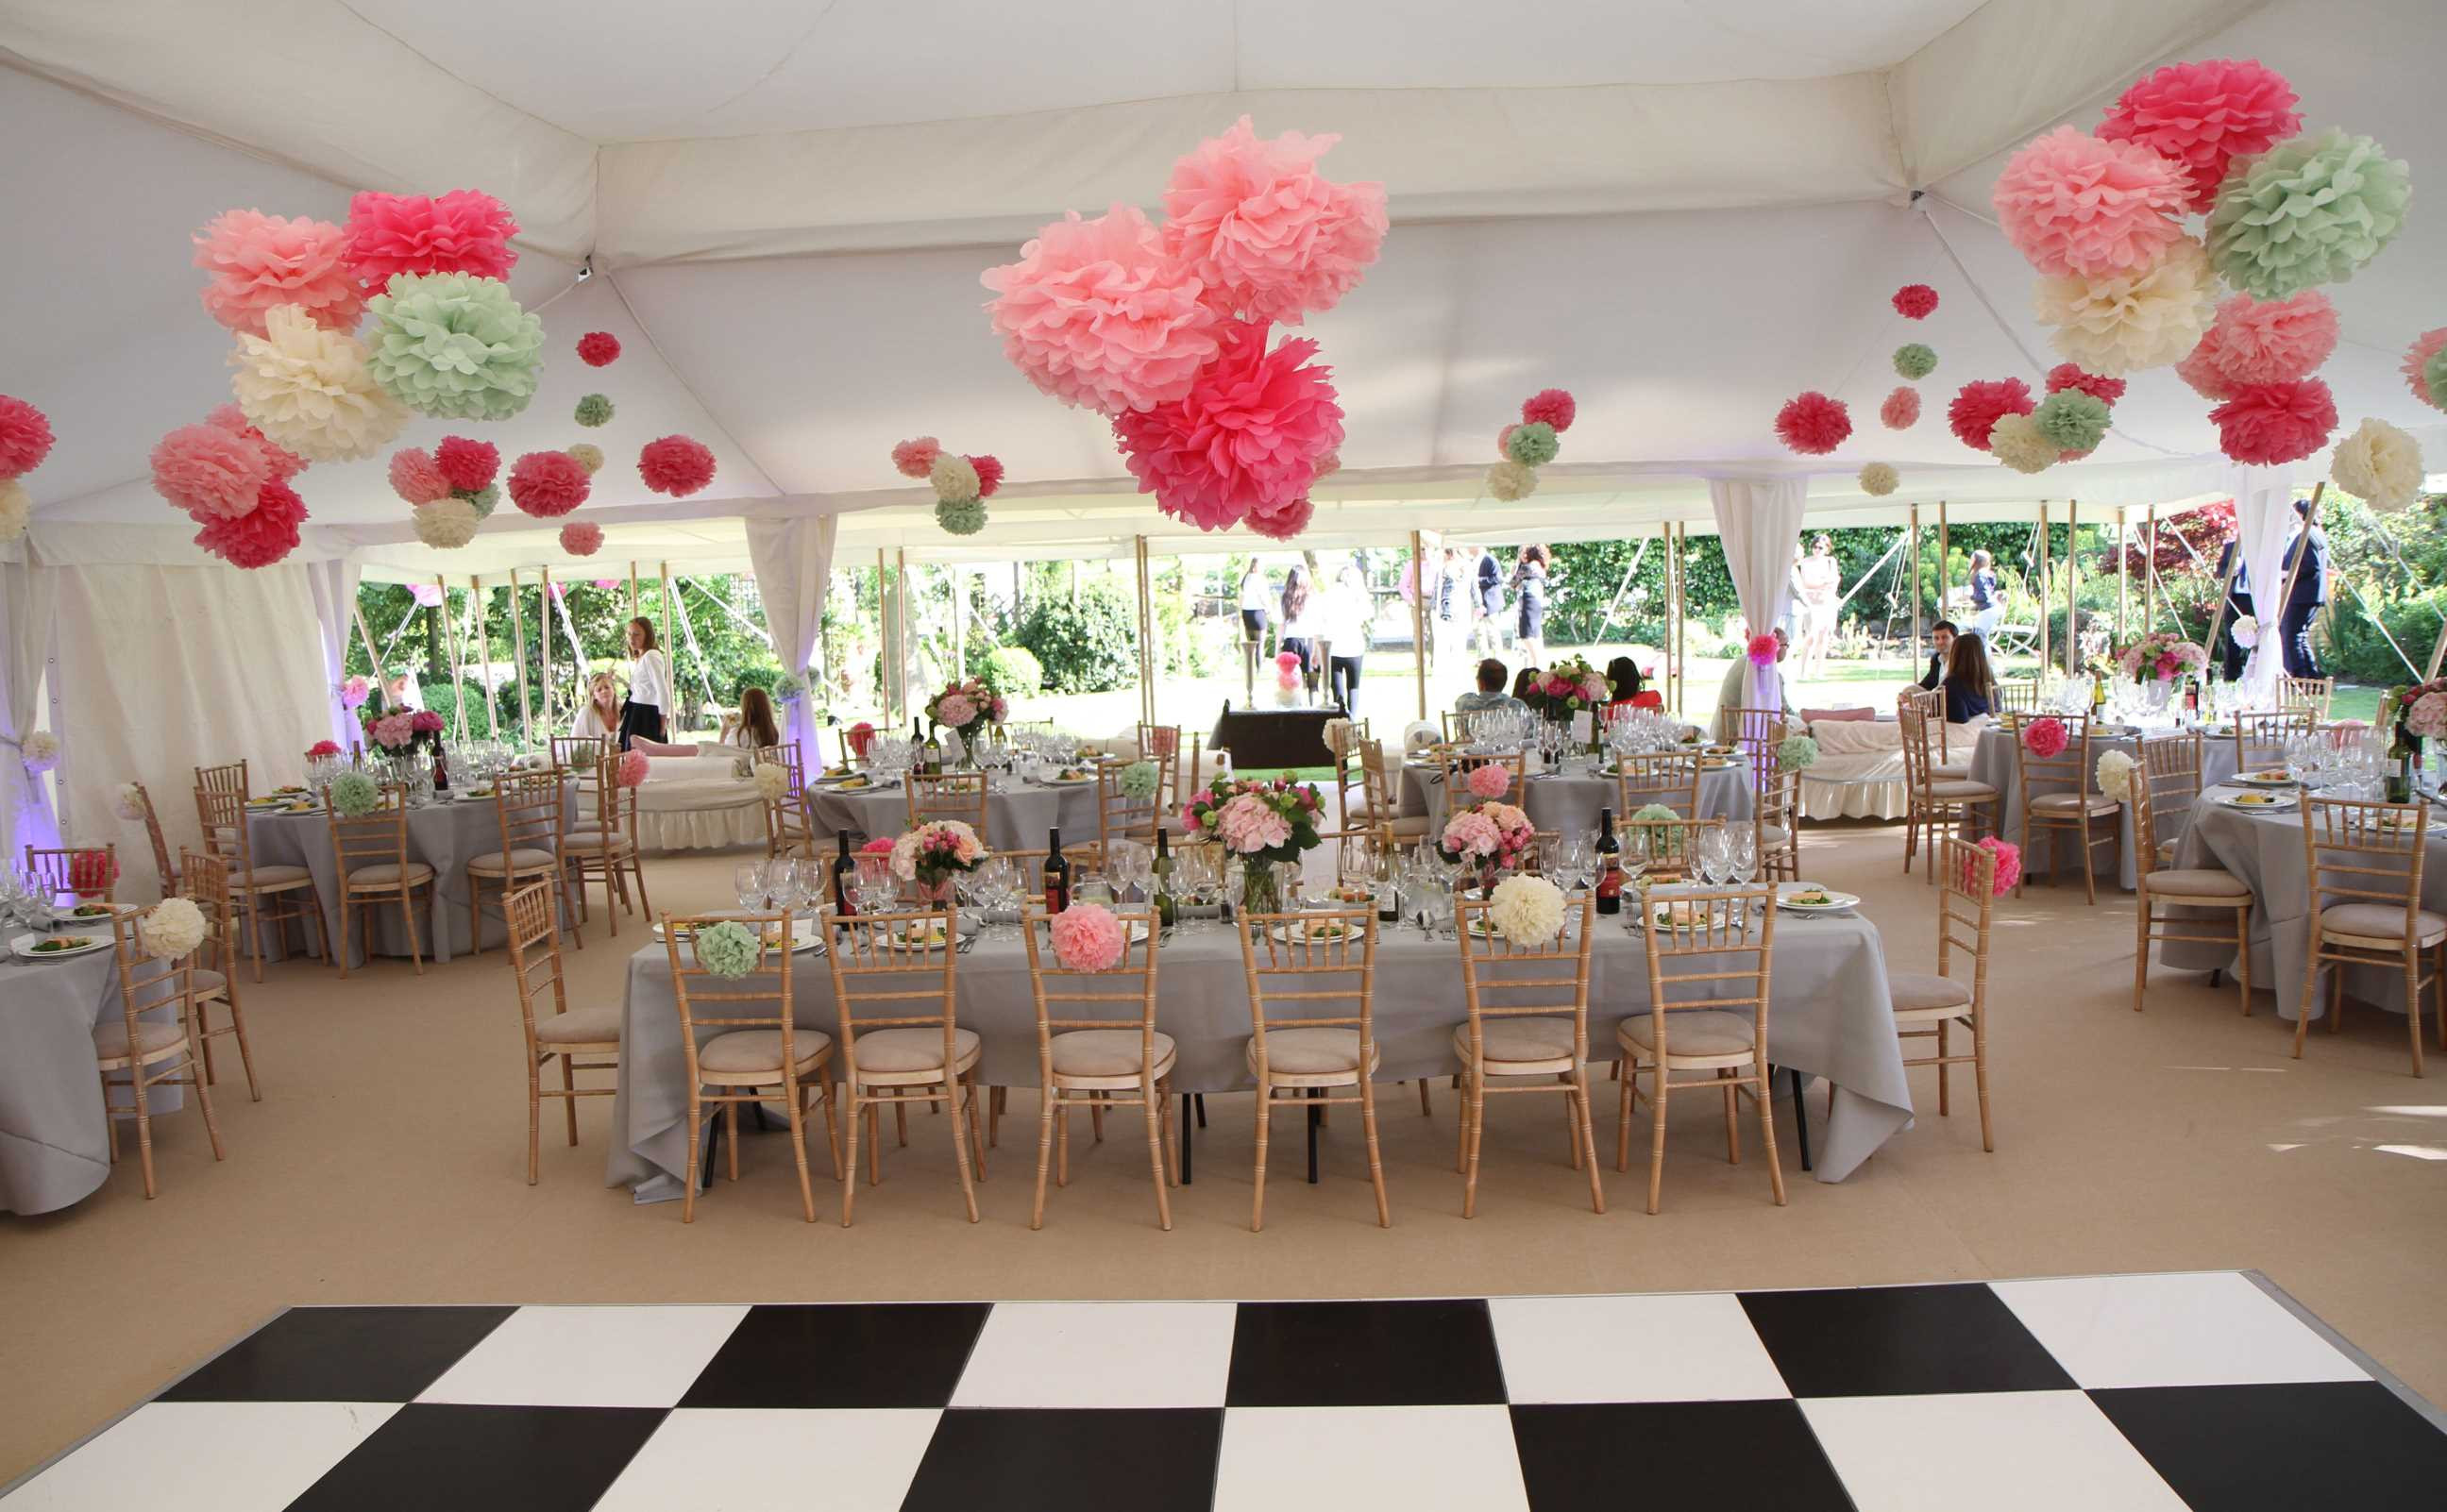 Company Christmas Party Ideas On A Budget  Choosing the right furniture to suit your venue Yahire